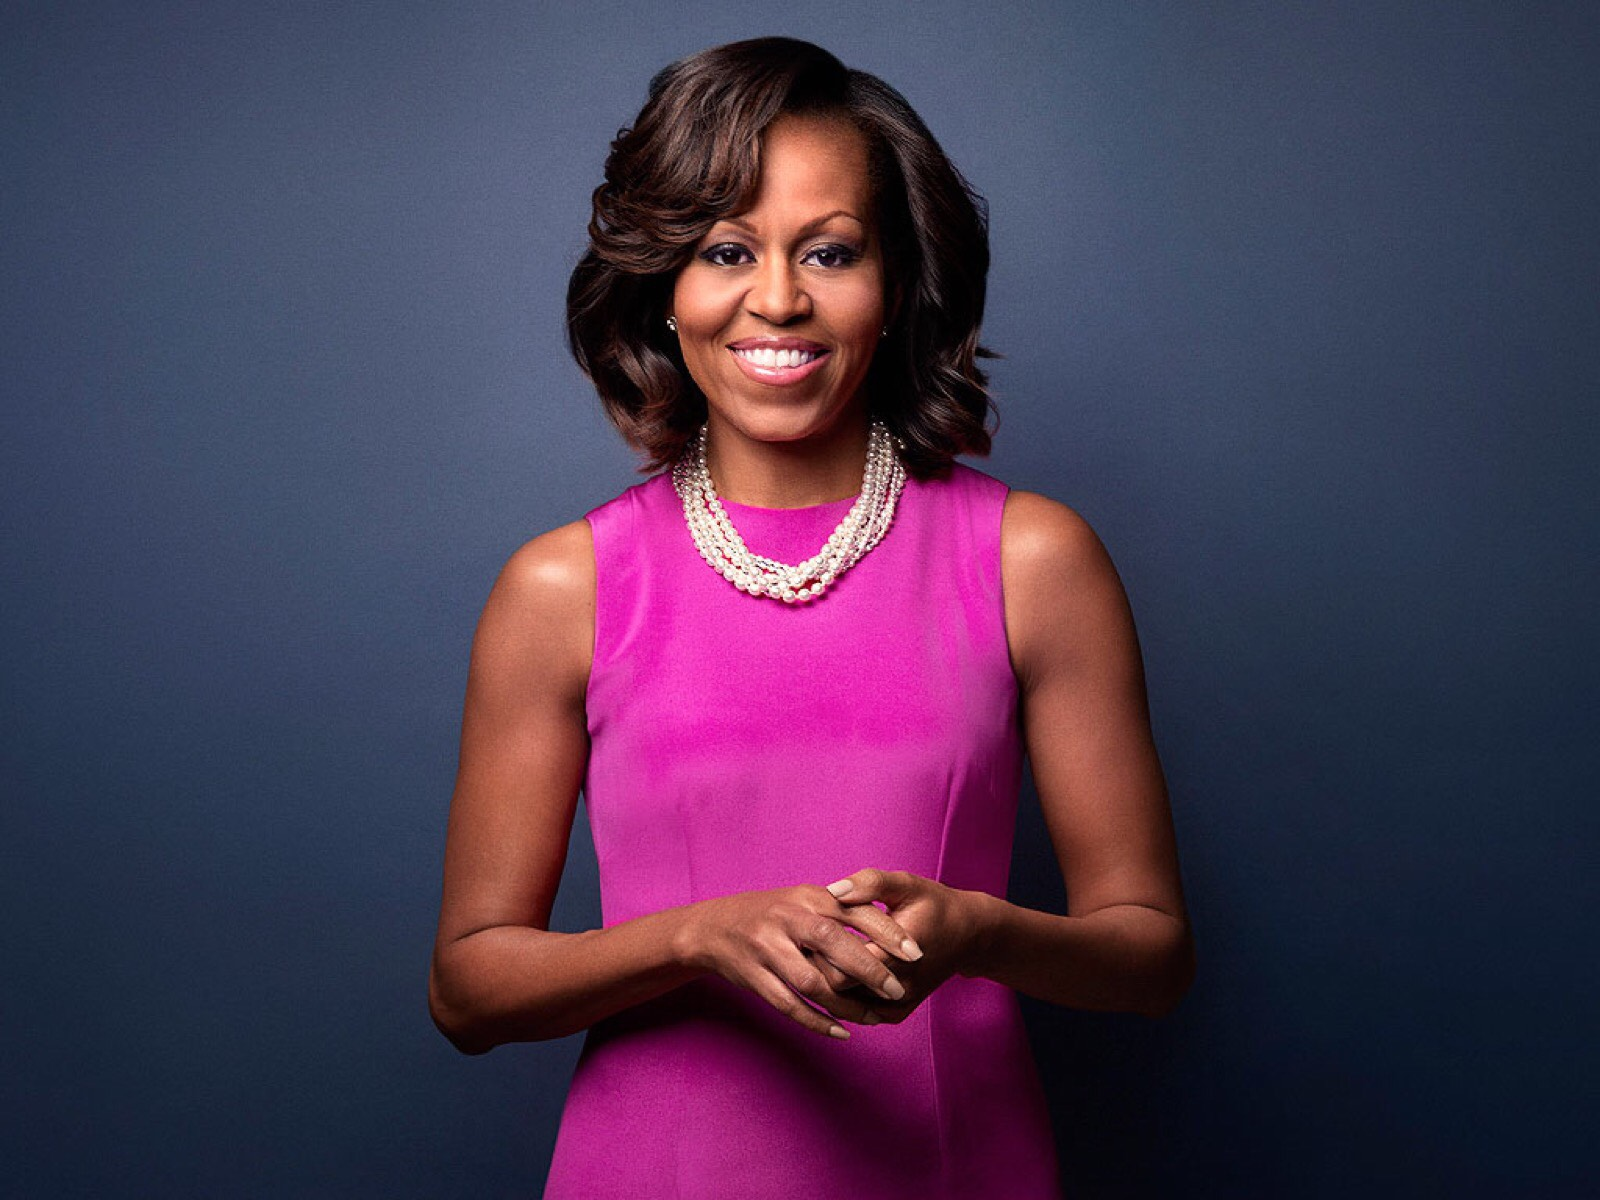 Image of Michelle Obama.